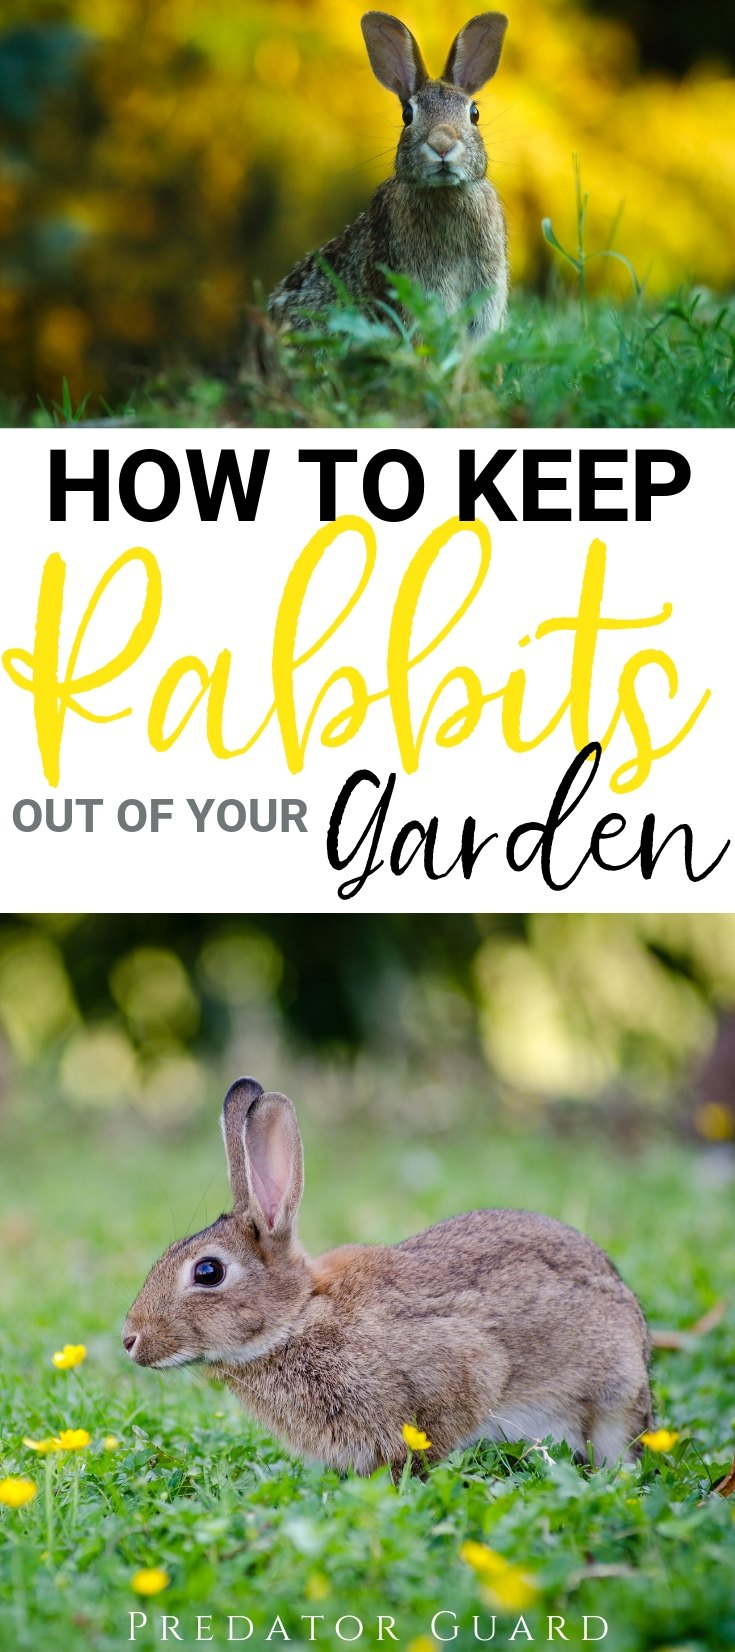 How-To-Keep-Rabbits-Out-of-Garden